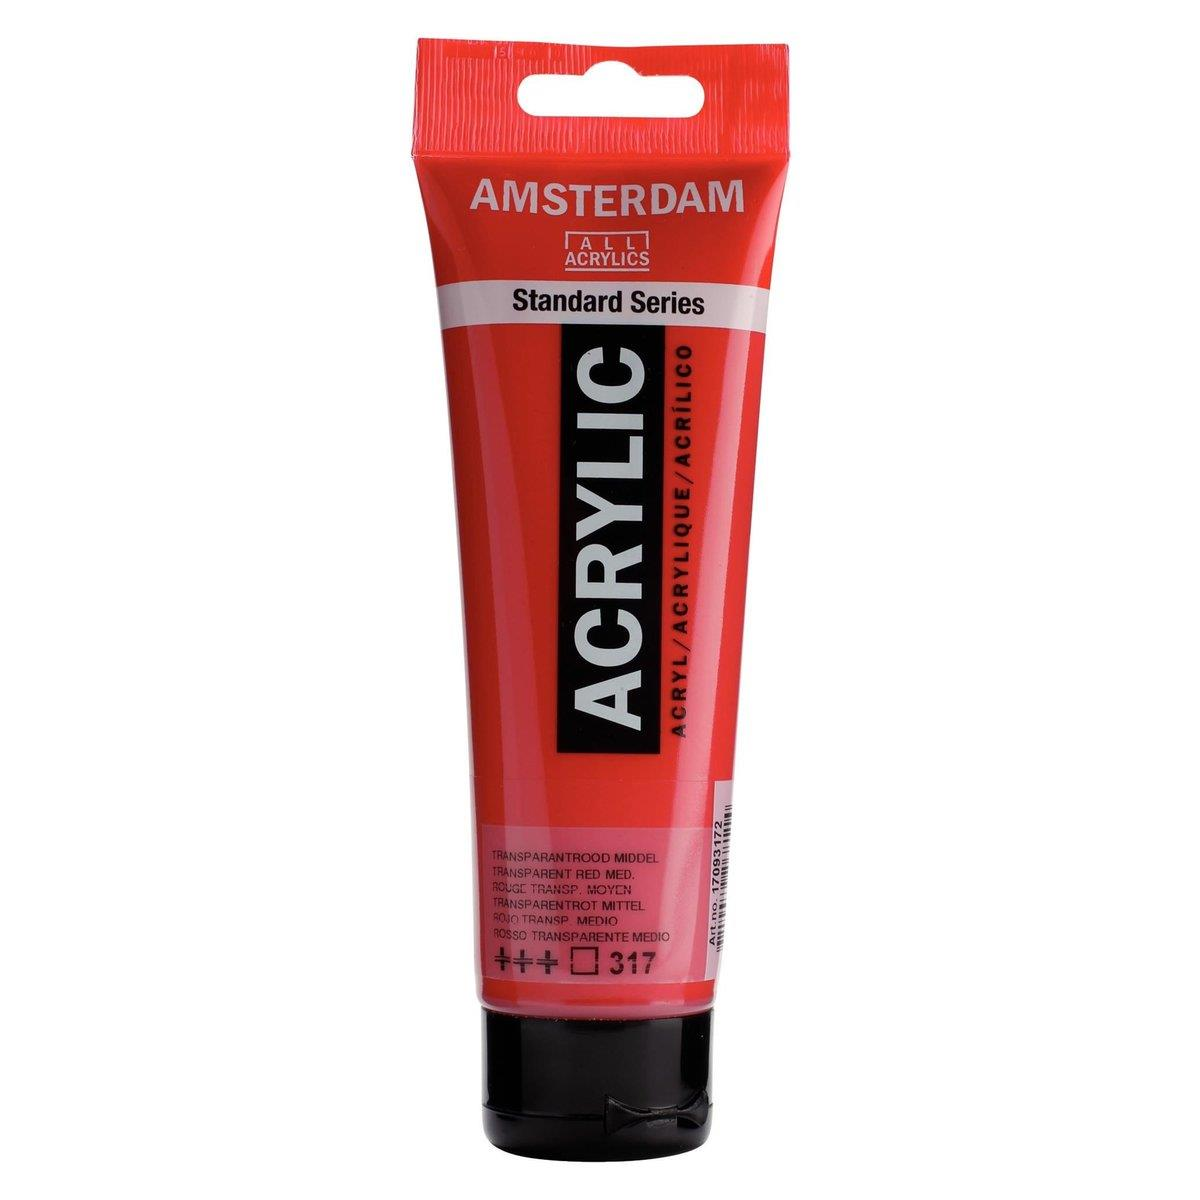 Royal Talens Amsterdam Standard Series Acrylfarbe Transparentrot Mittel 317, 120ml